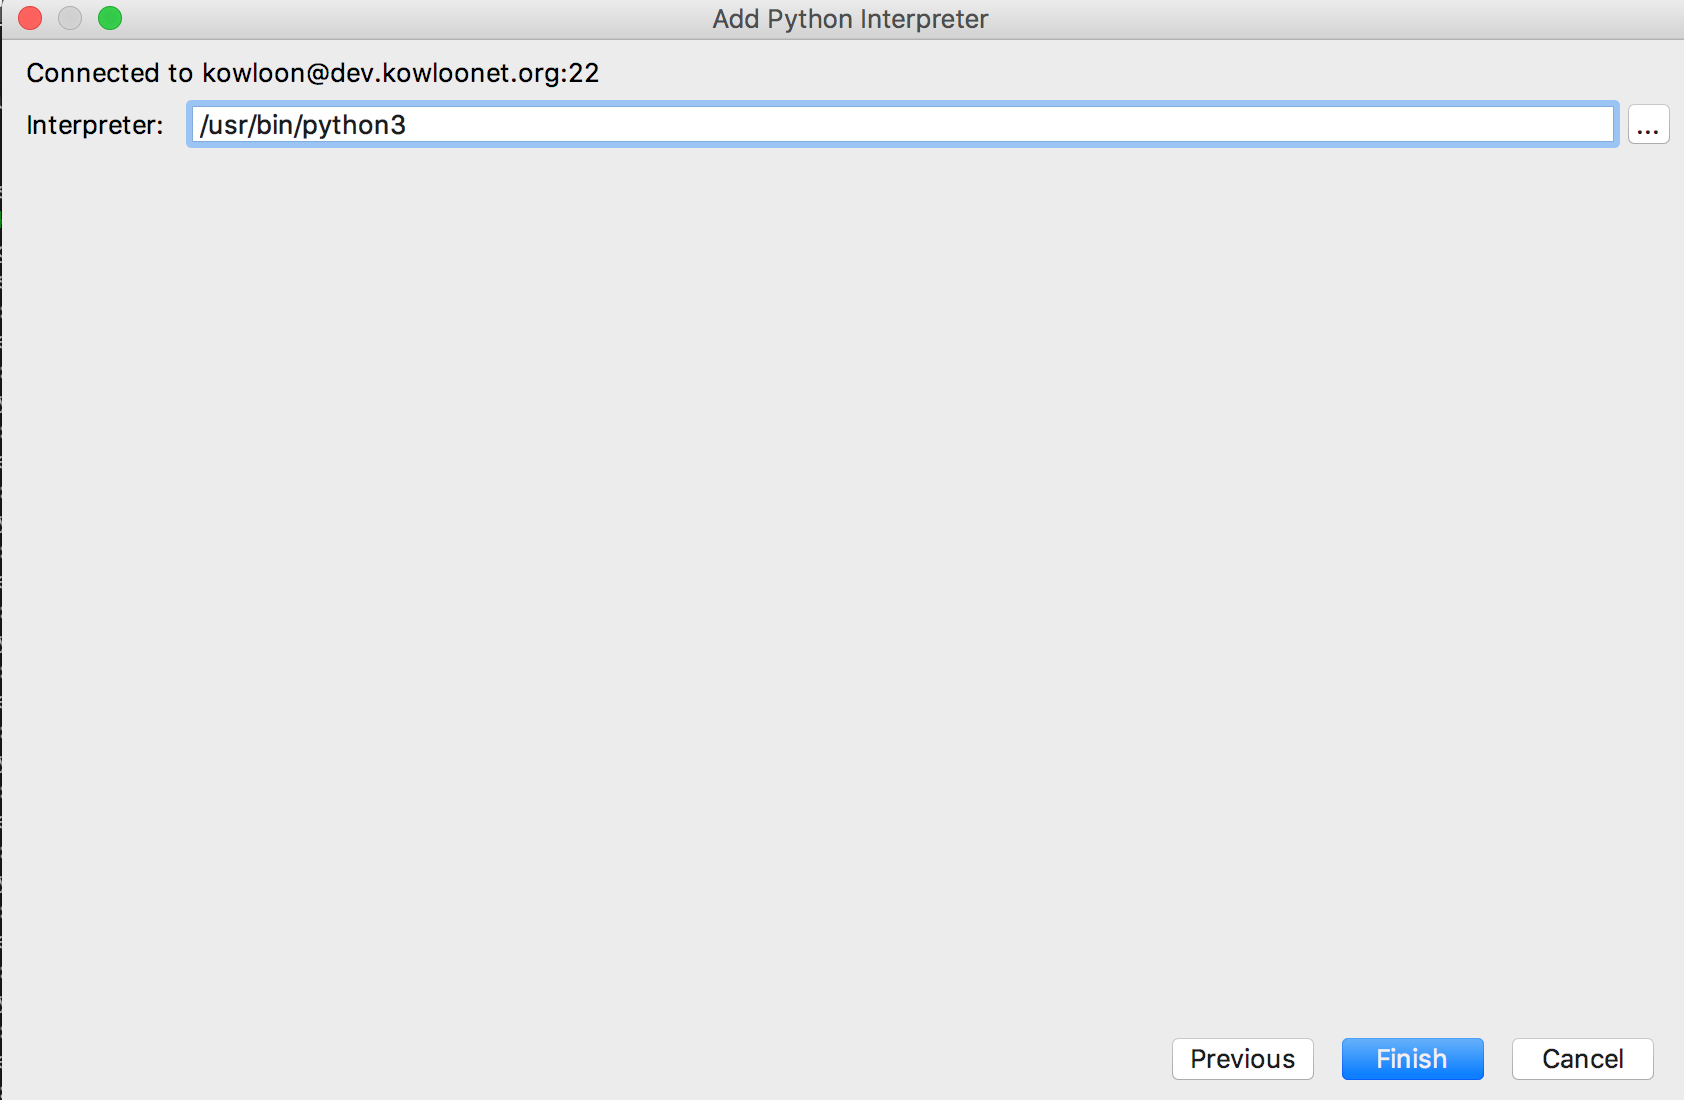 pycharm_remote_05.png